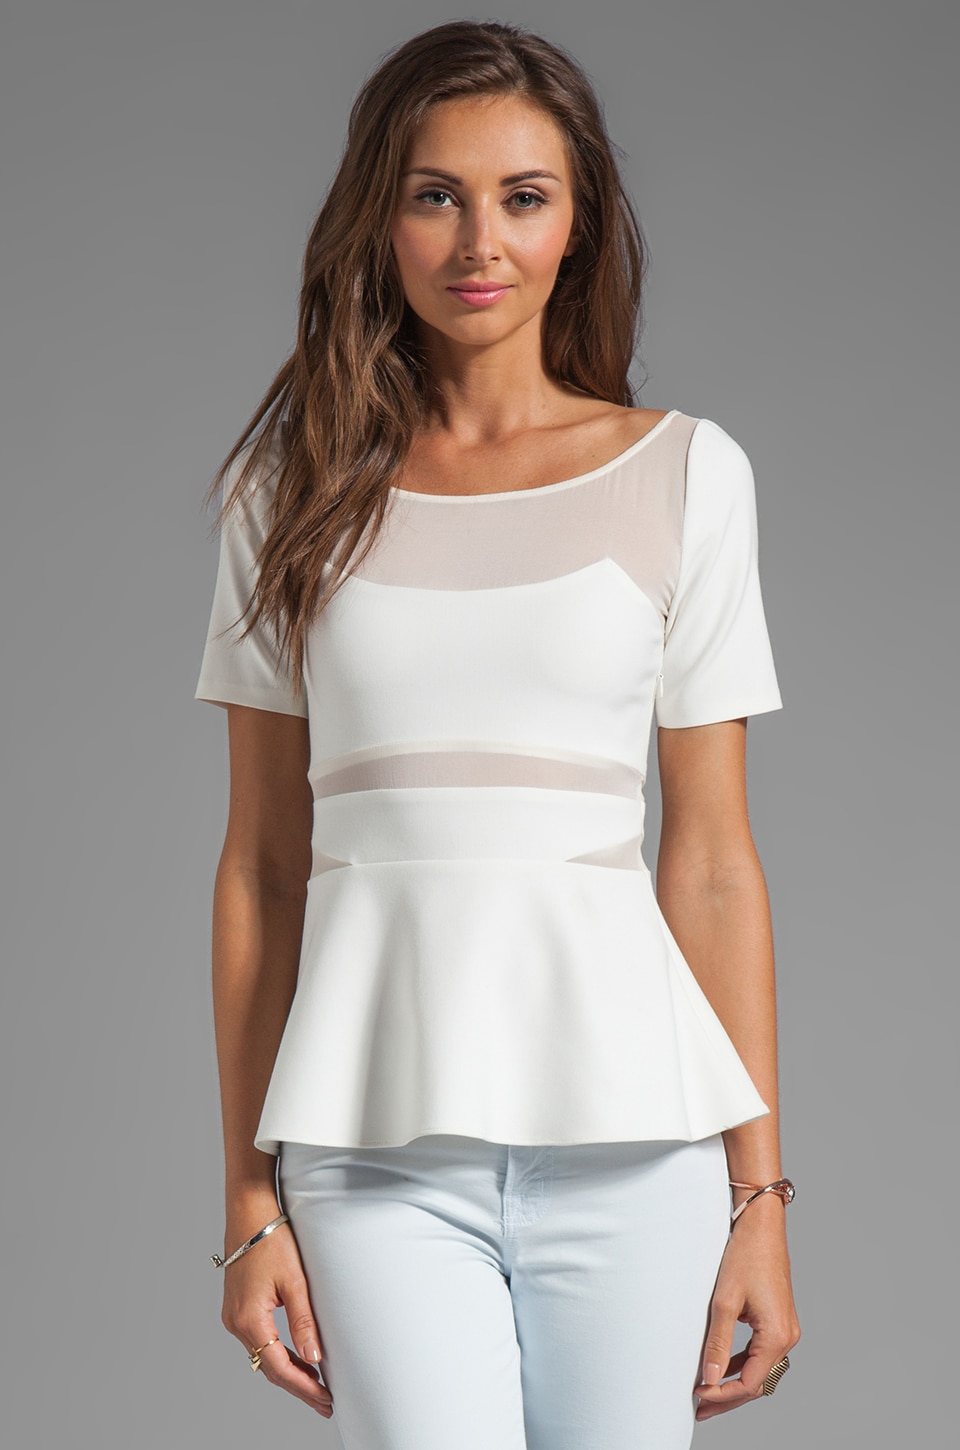 Elizabeth and James Selena Peplum Top in White